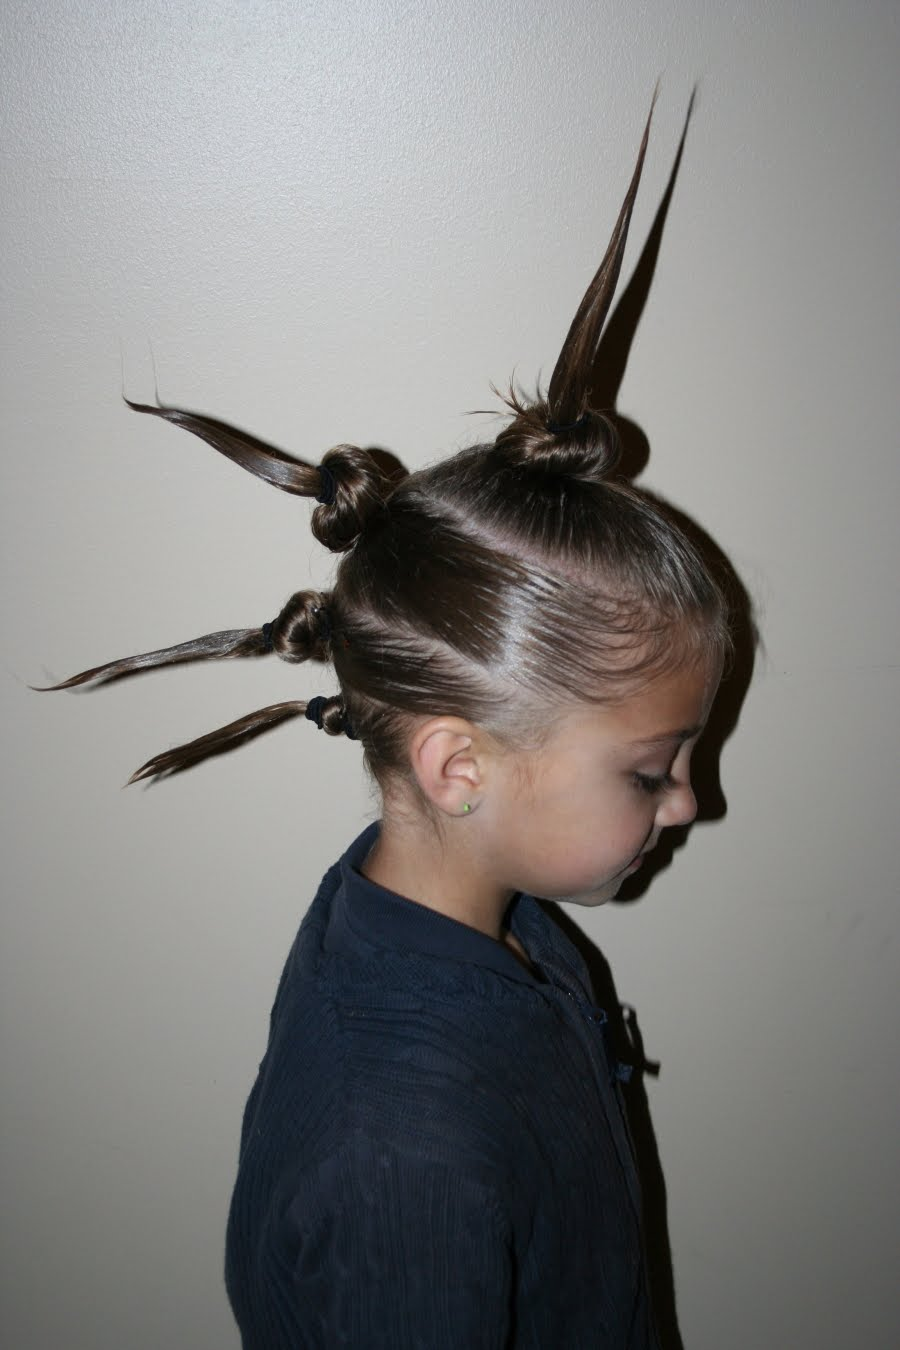 Crazy hair day please click crazy hair day to see hairdo s from